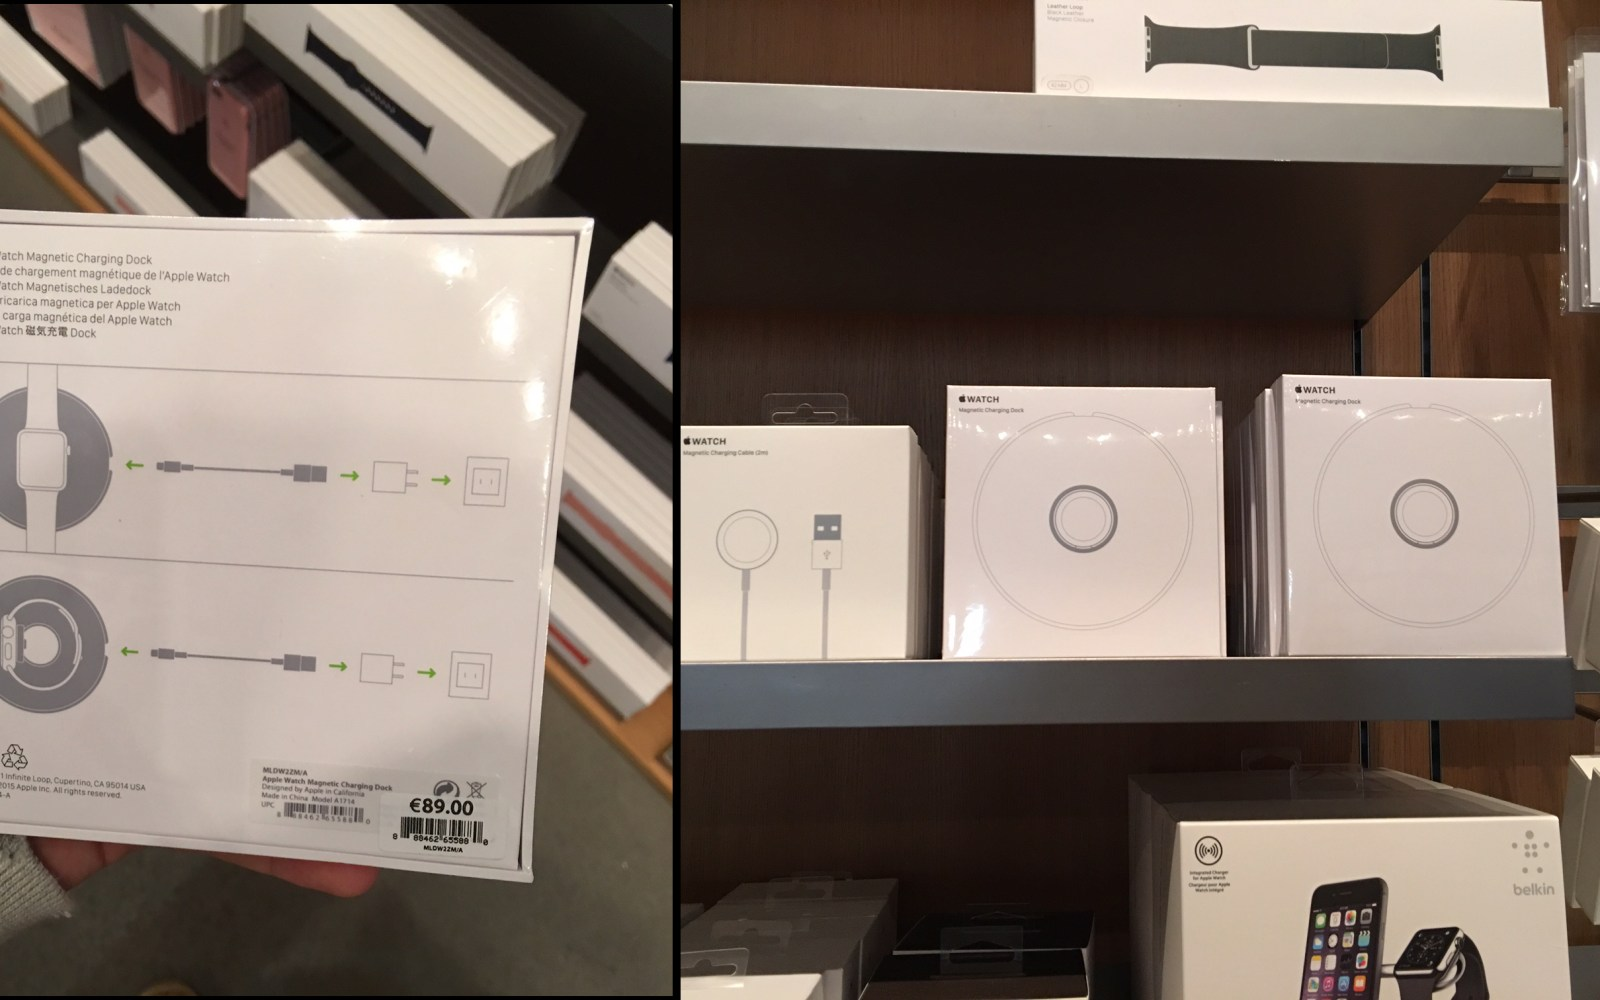 Apple Watch Magnetic Charging Dock now available to buy for $79, watch a full hands-on video